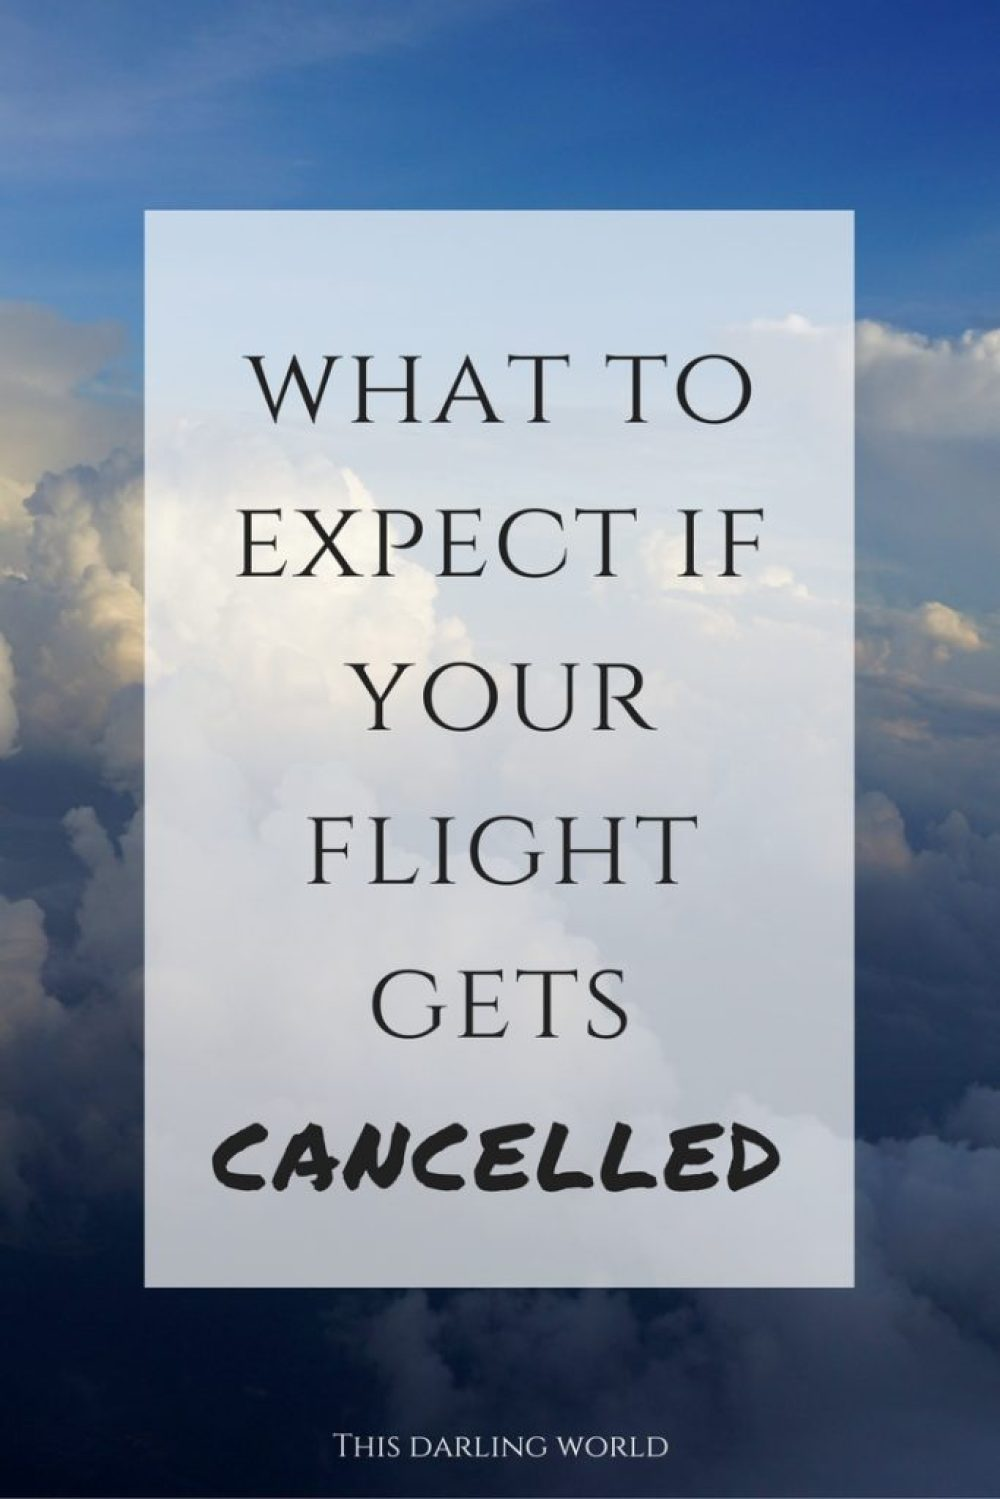 What to Expect if Your Flight Gets Cancelled